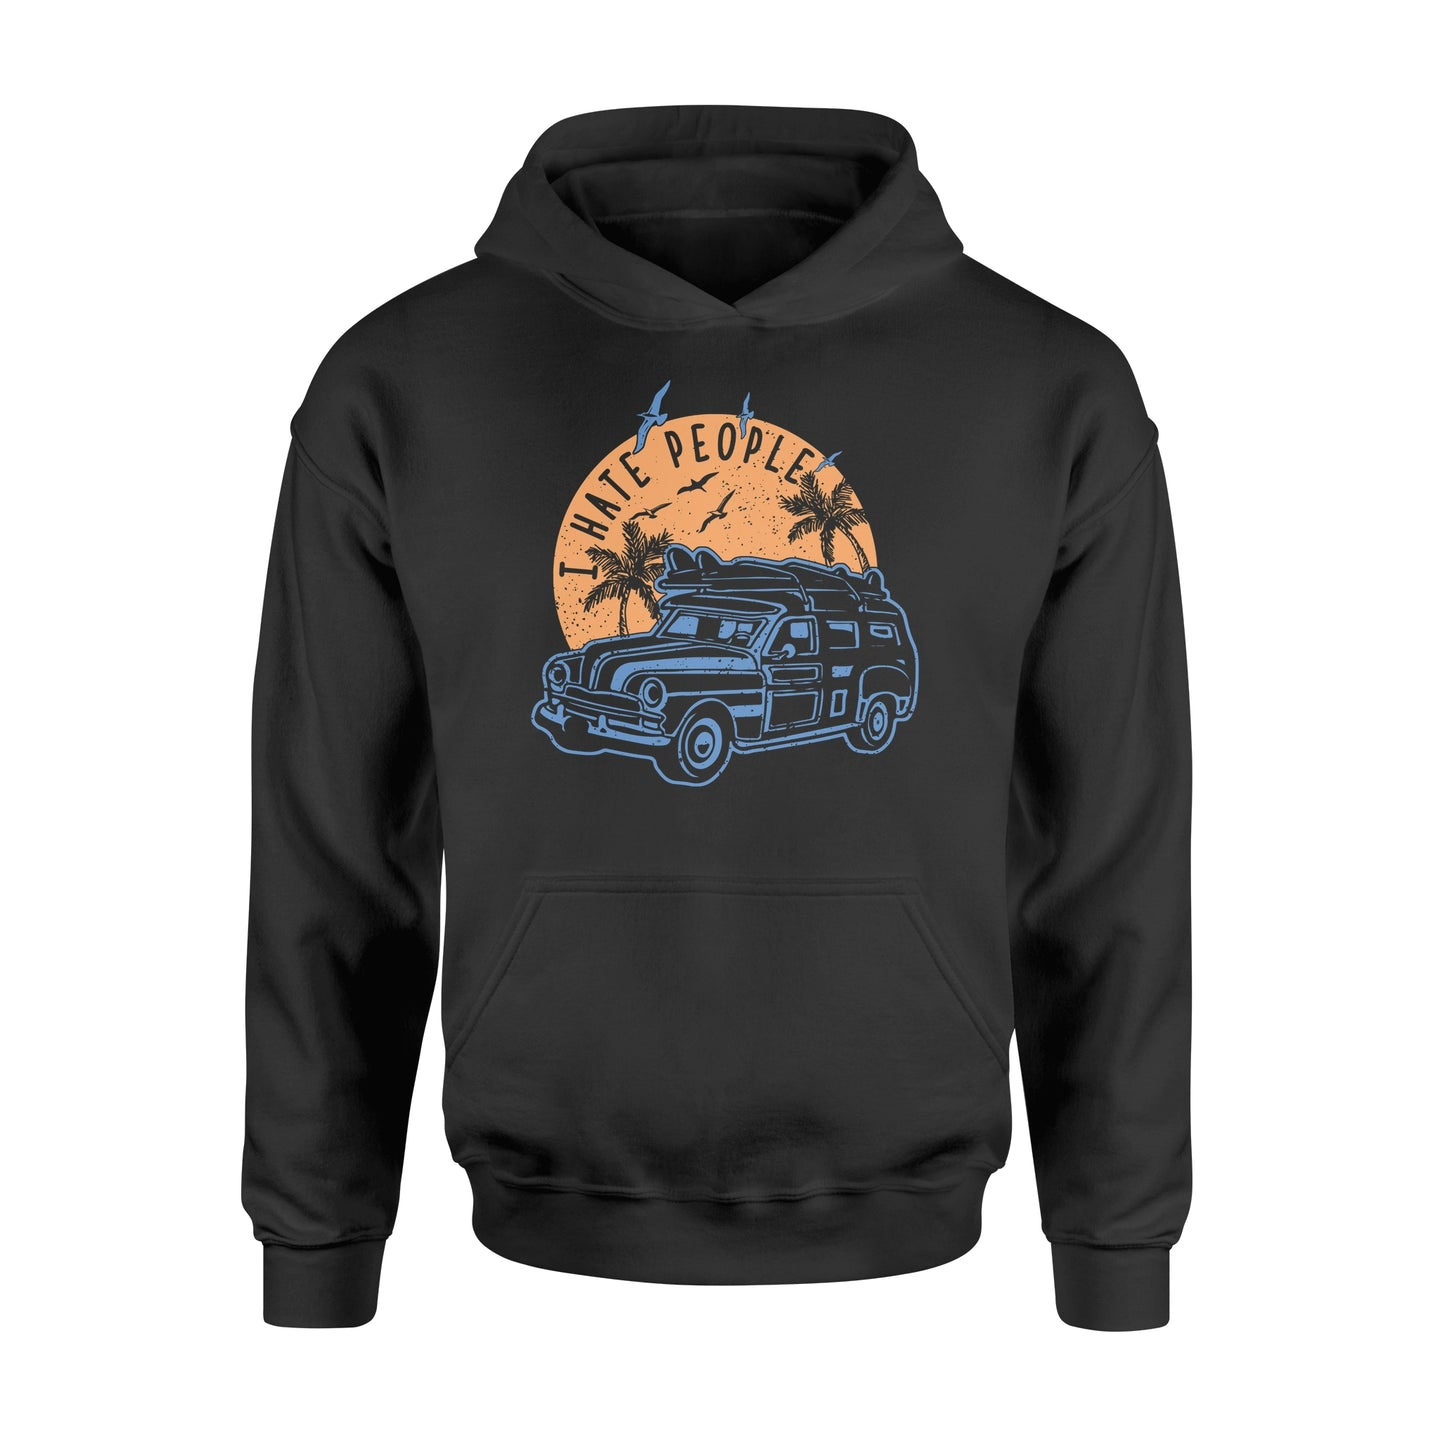 I Hate People Surfing - Standard Hoodie Apparel S / Black